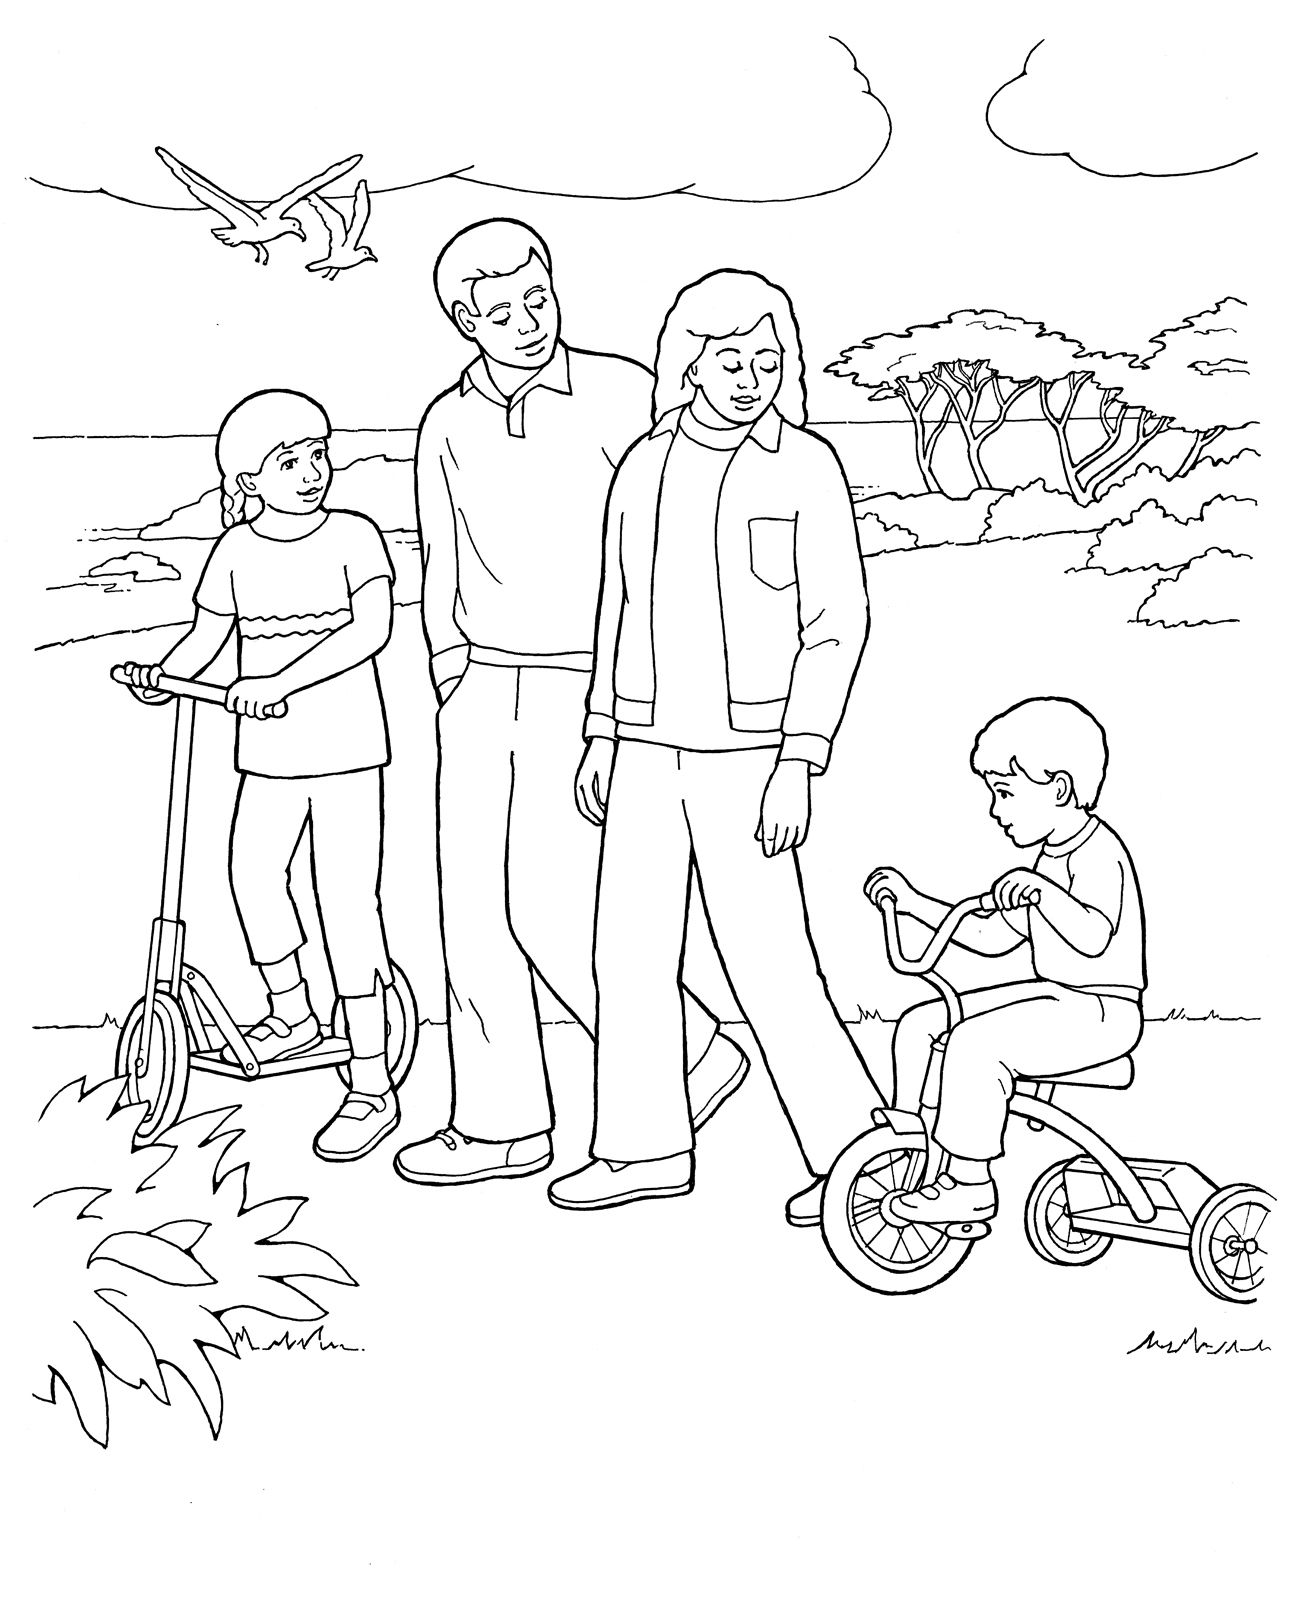 Primary coloring page. Family walking together #ldsprimary.